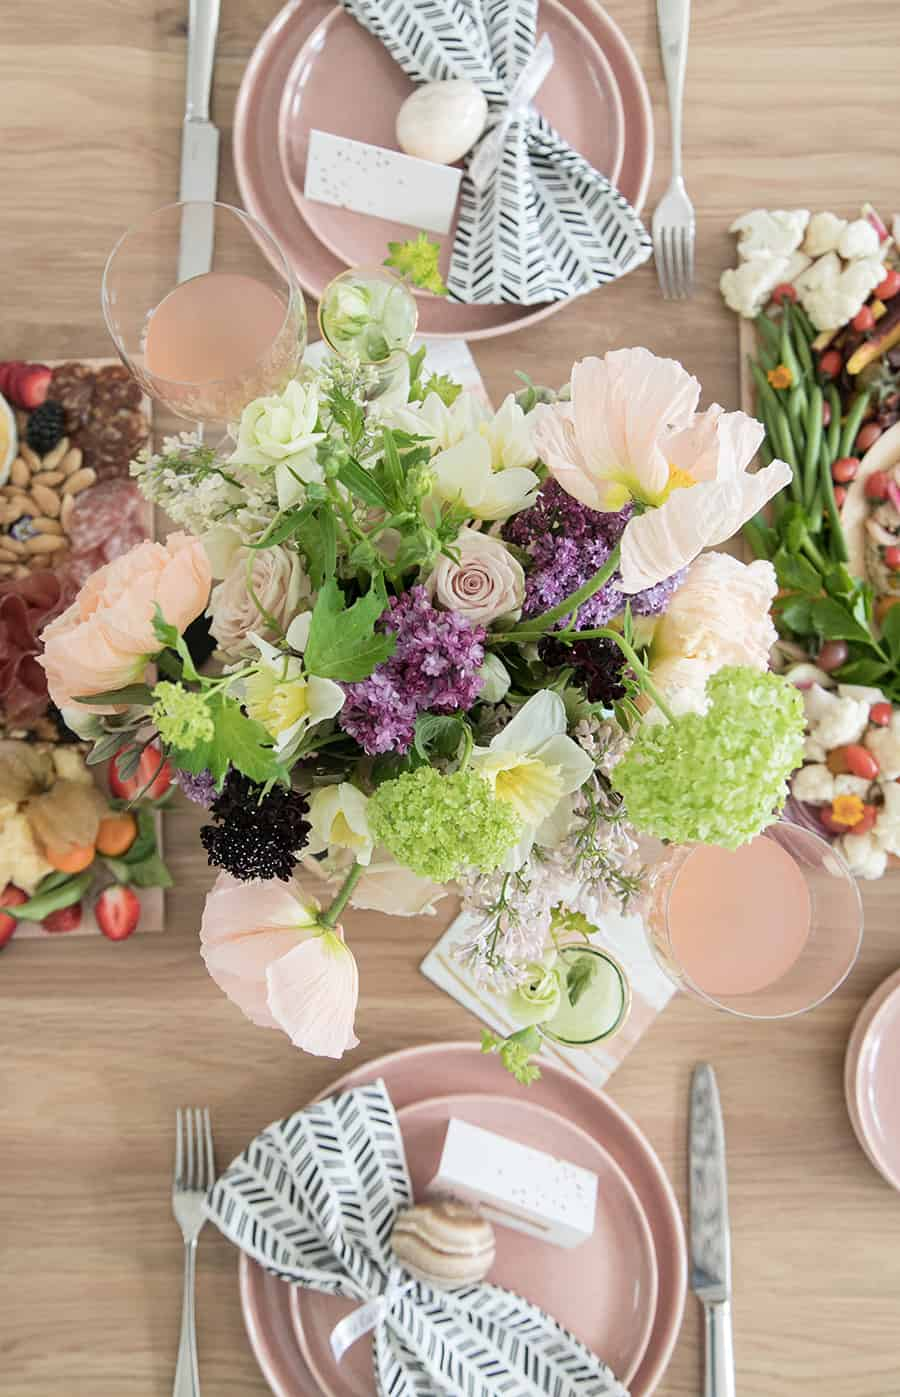 host a quick and easy easter brunch sugar and charm sugar and charm